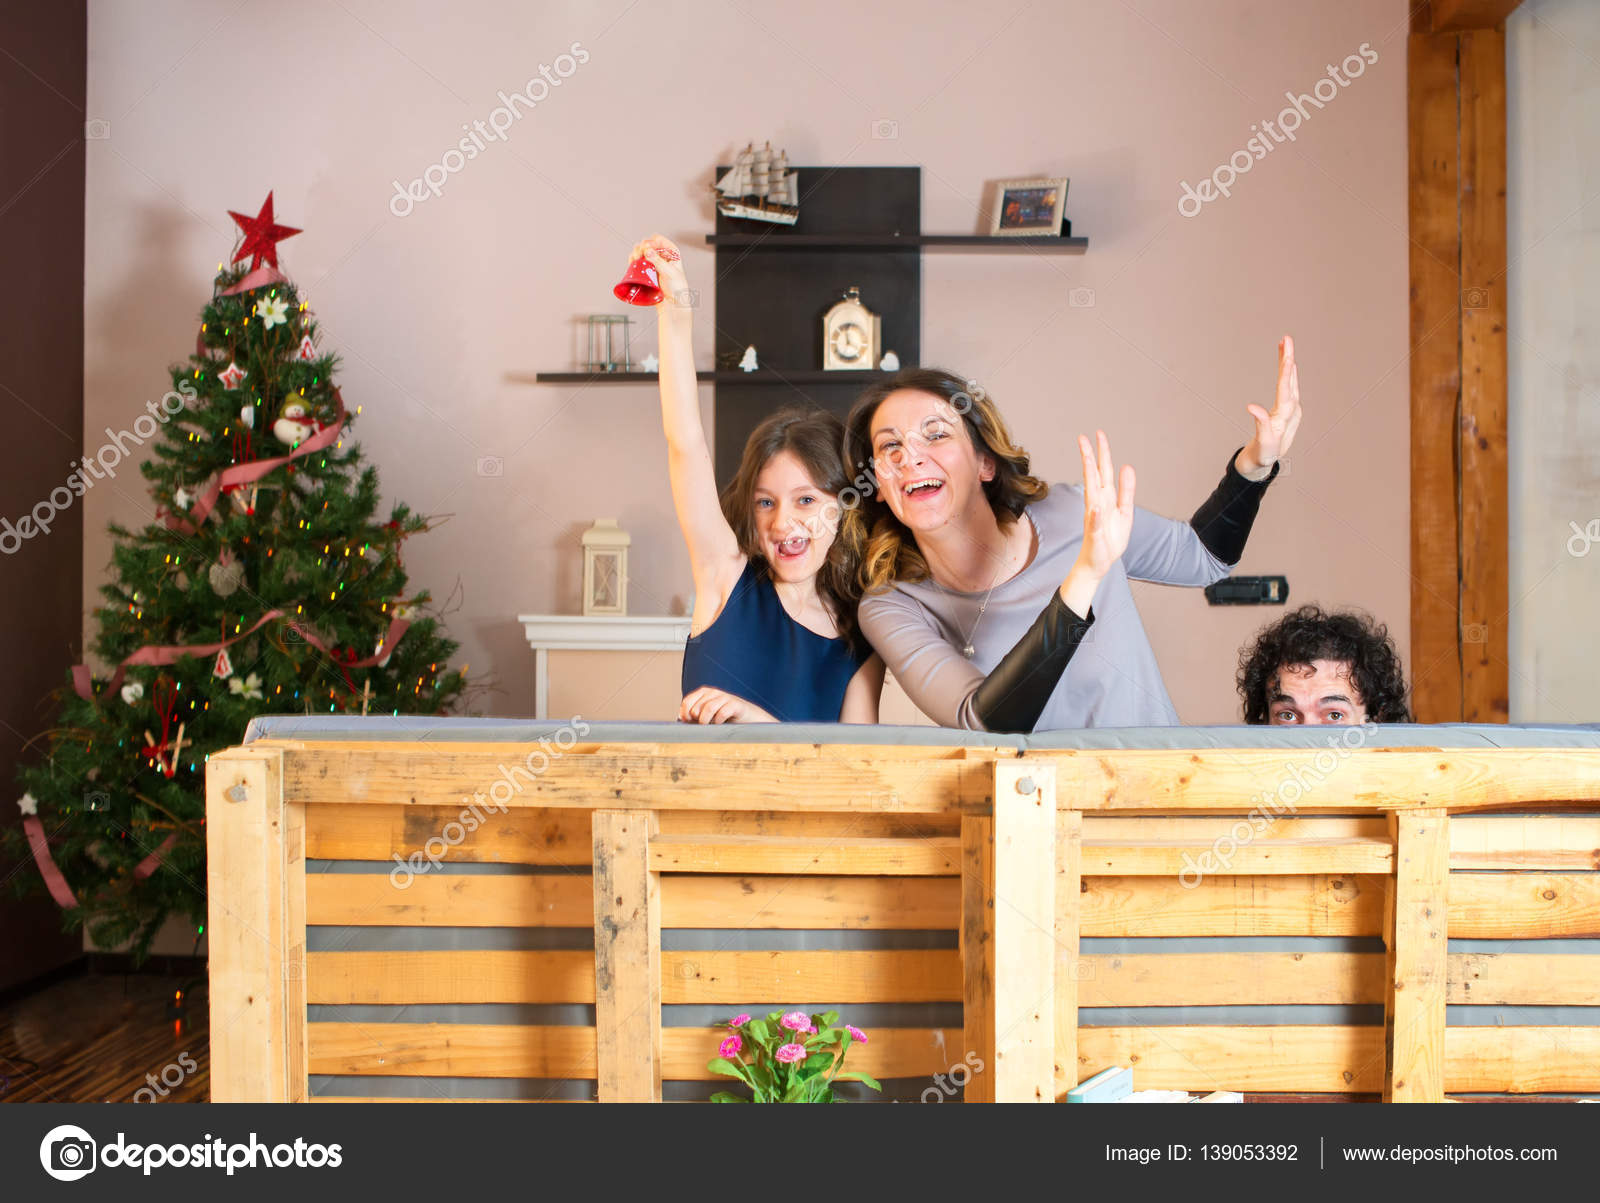 mother and daughter happy beacause of holidays and father is hiding